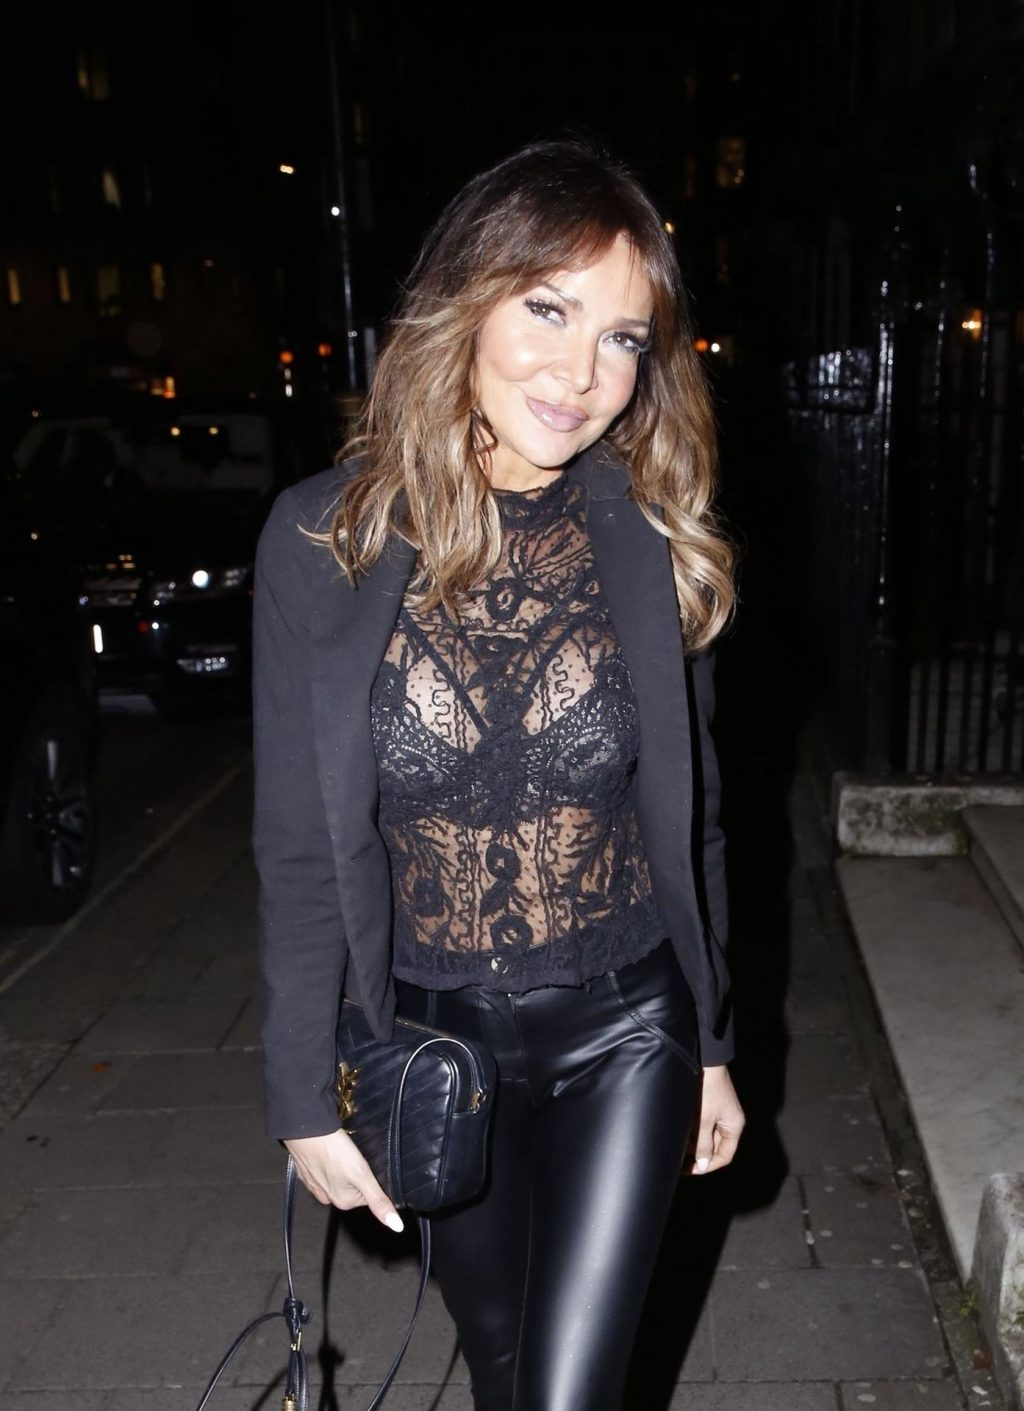 Lizzie Cundy Pictured Out on the Town with her Friends in London (36 Photos)